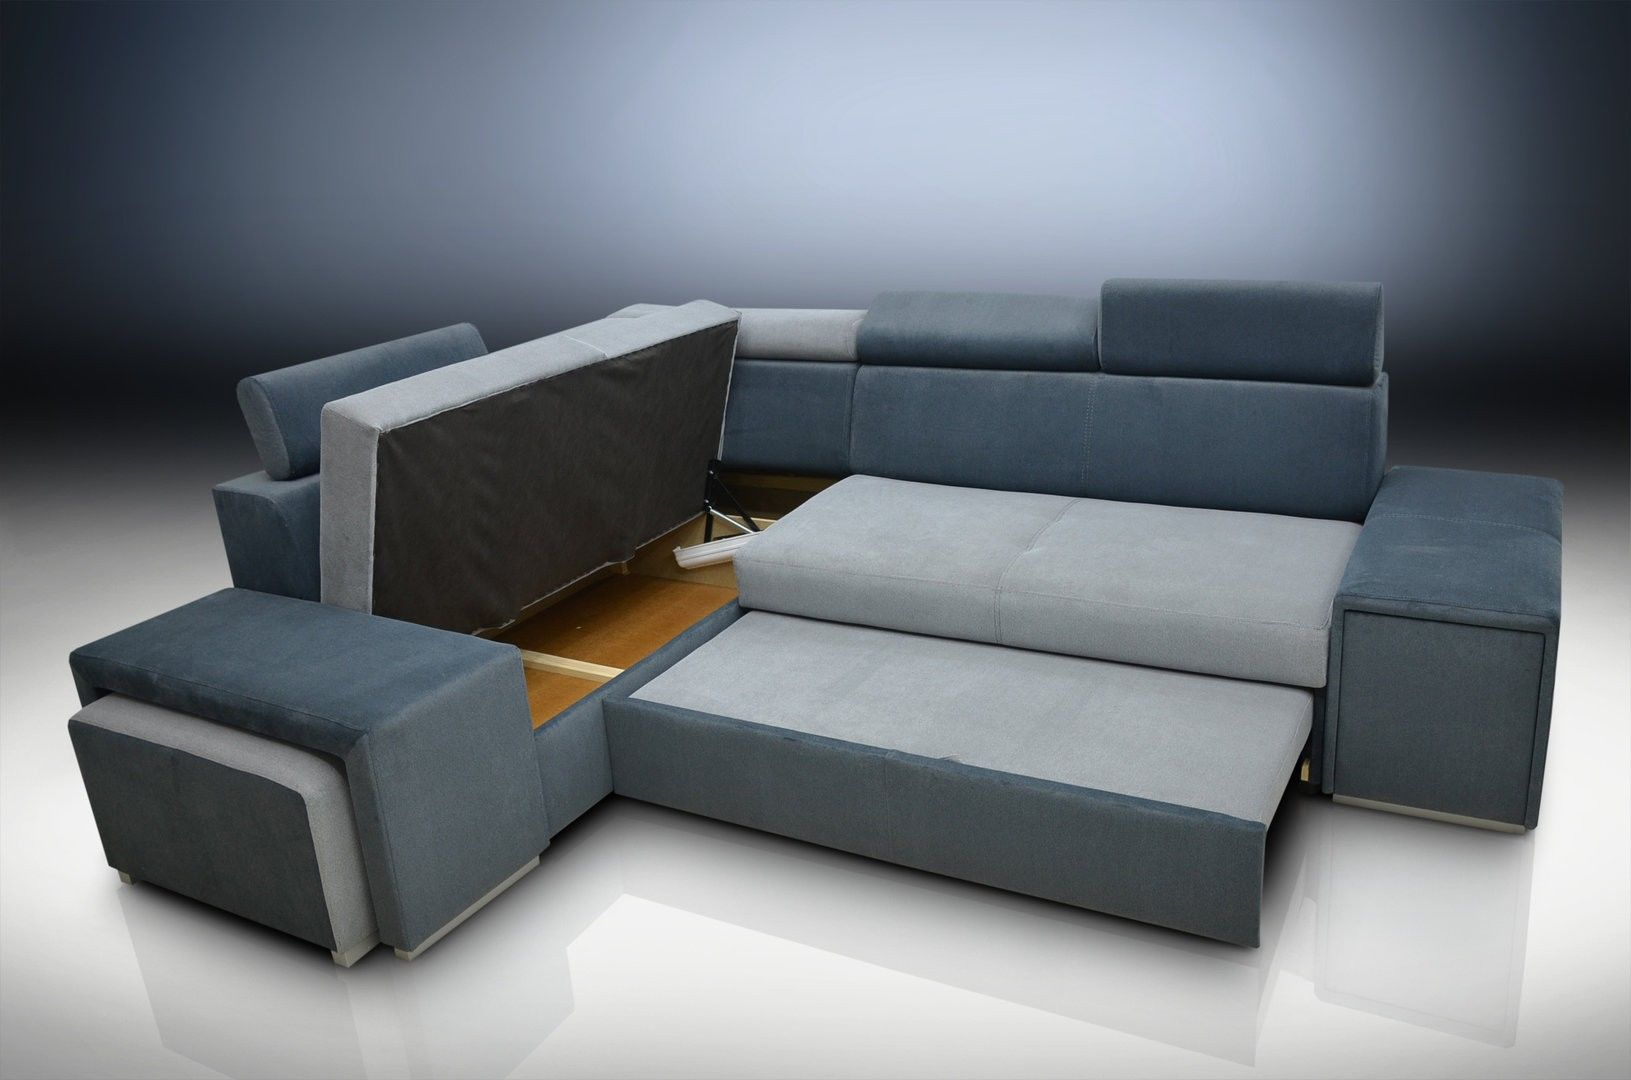 modern living room sofa sets architecture-Fantastic Living Room sofa Sets Ideas